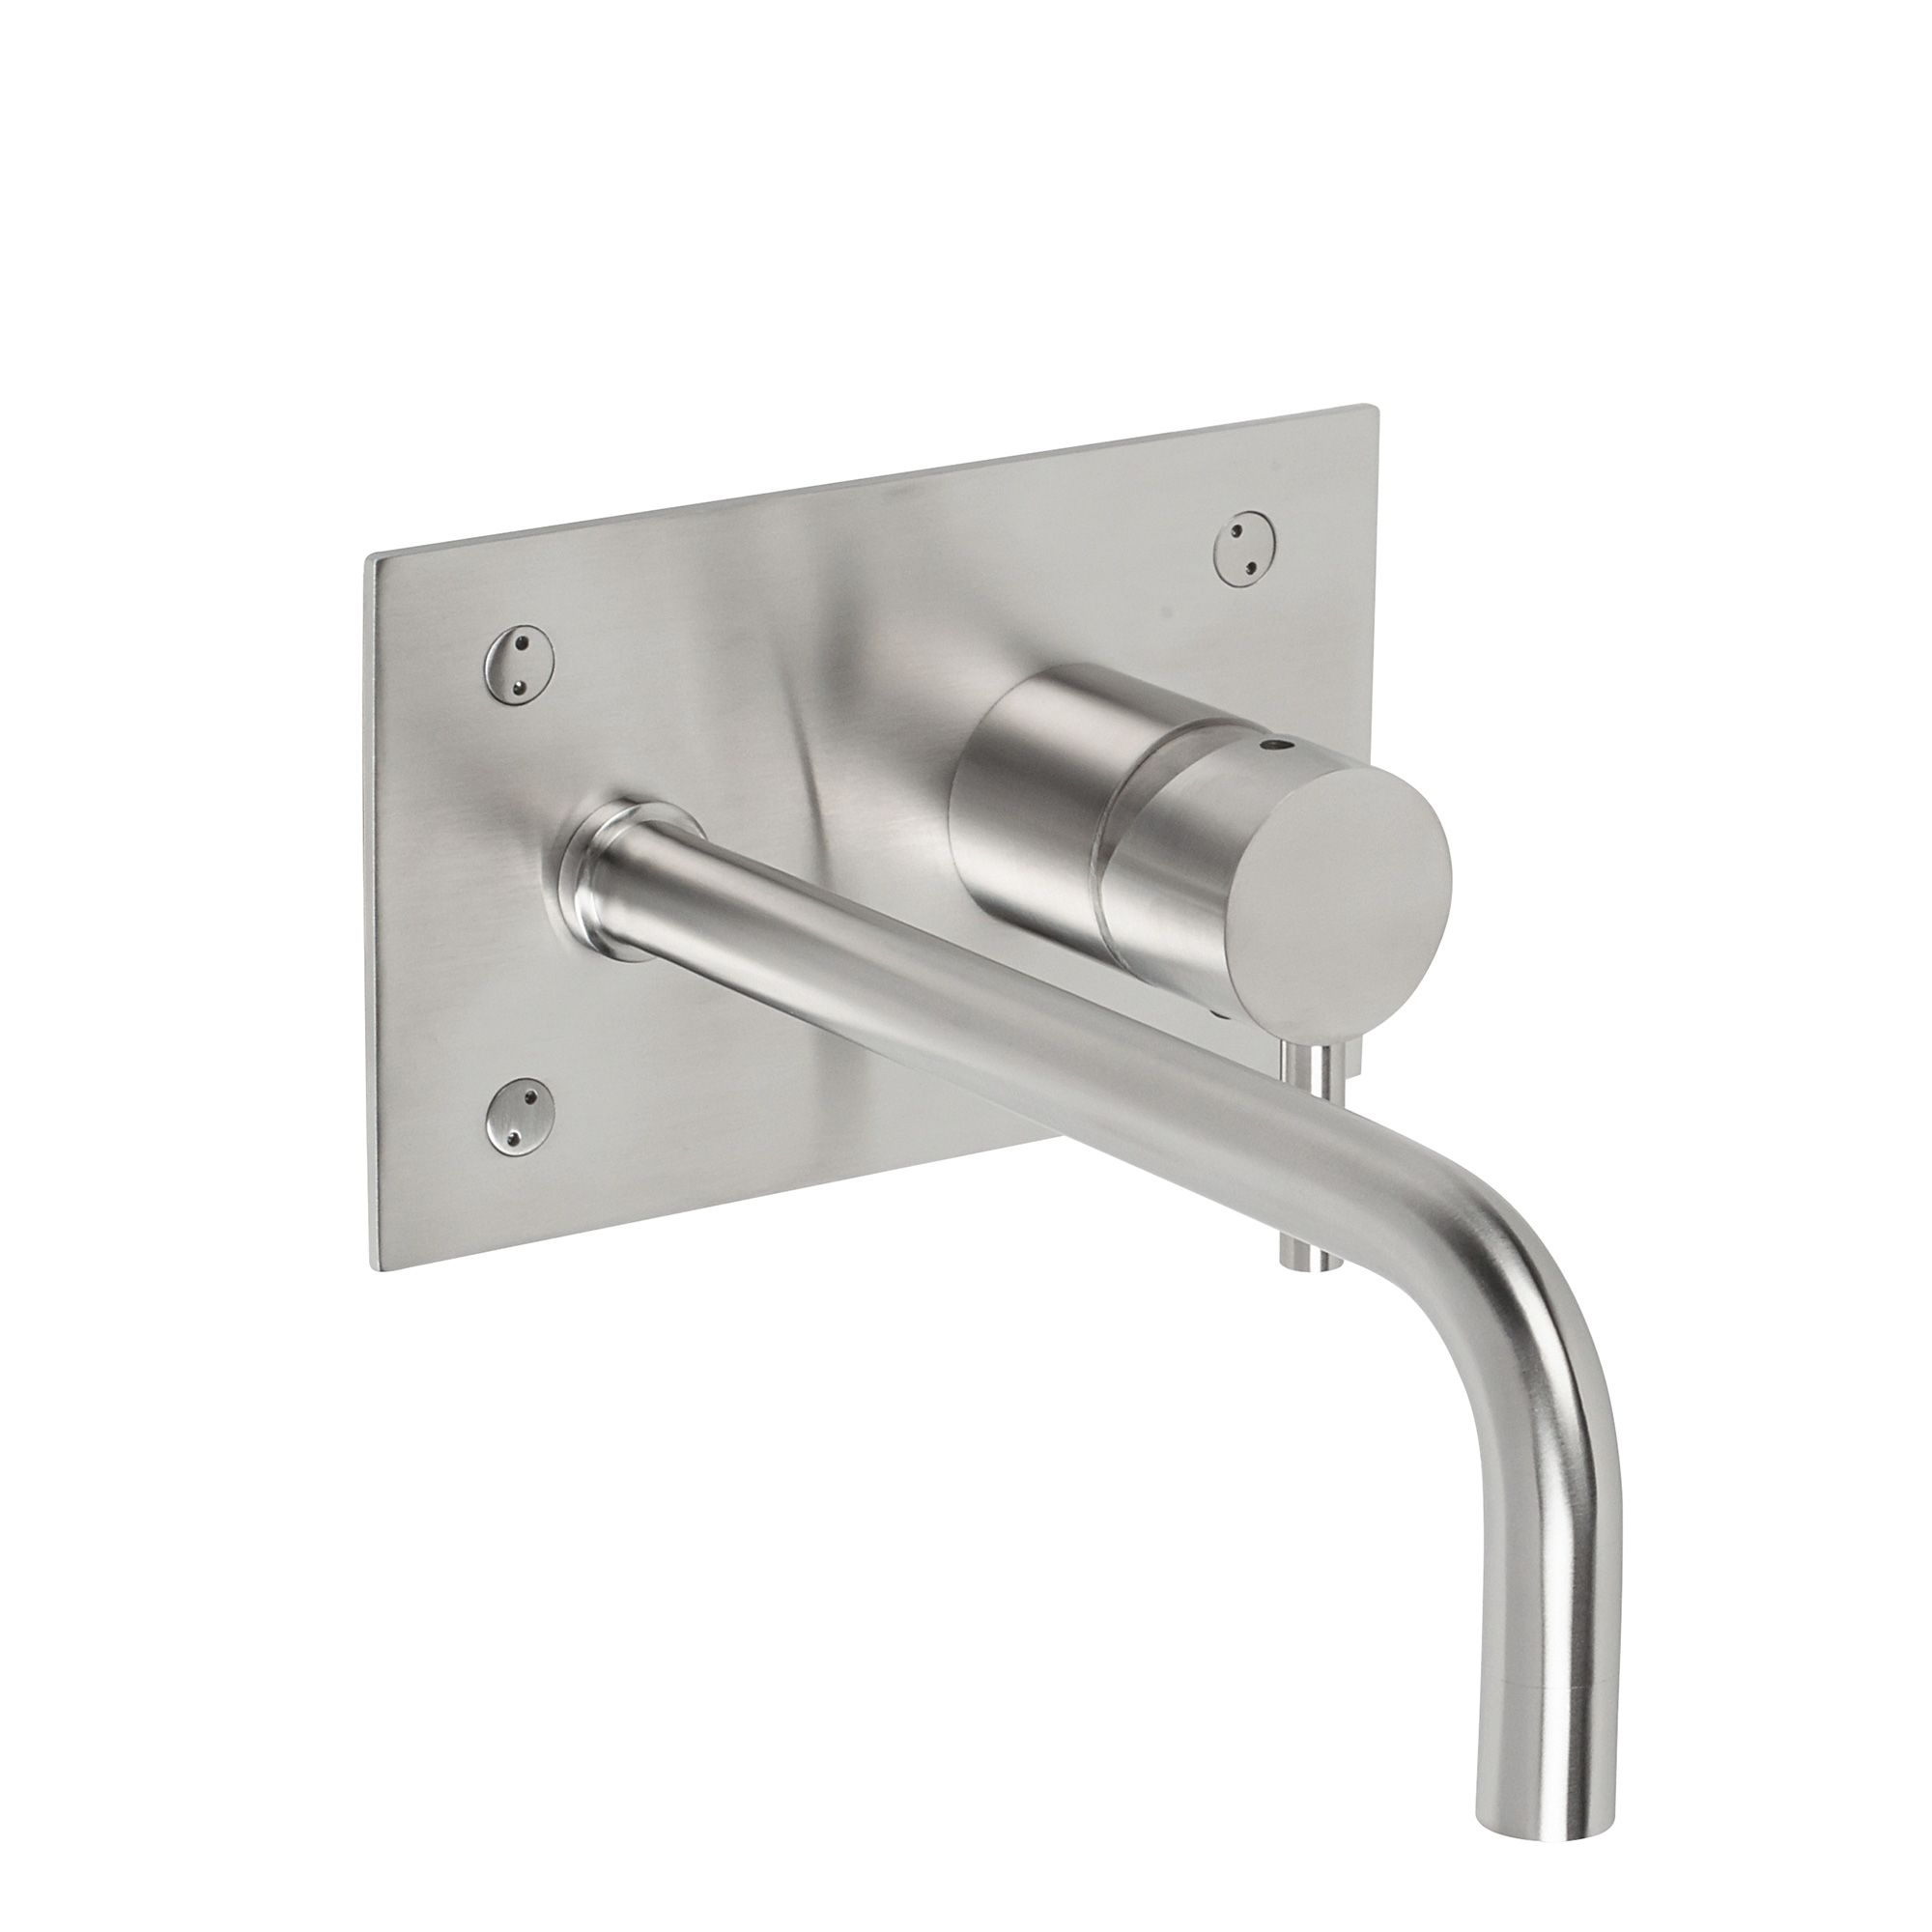 Hudson Wall mounted single lever basin mixer